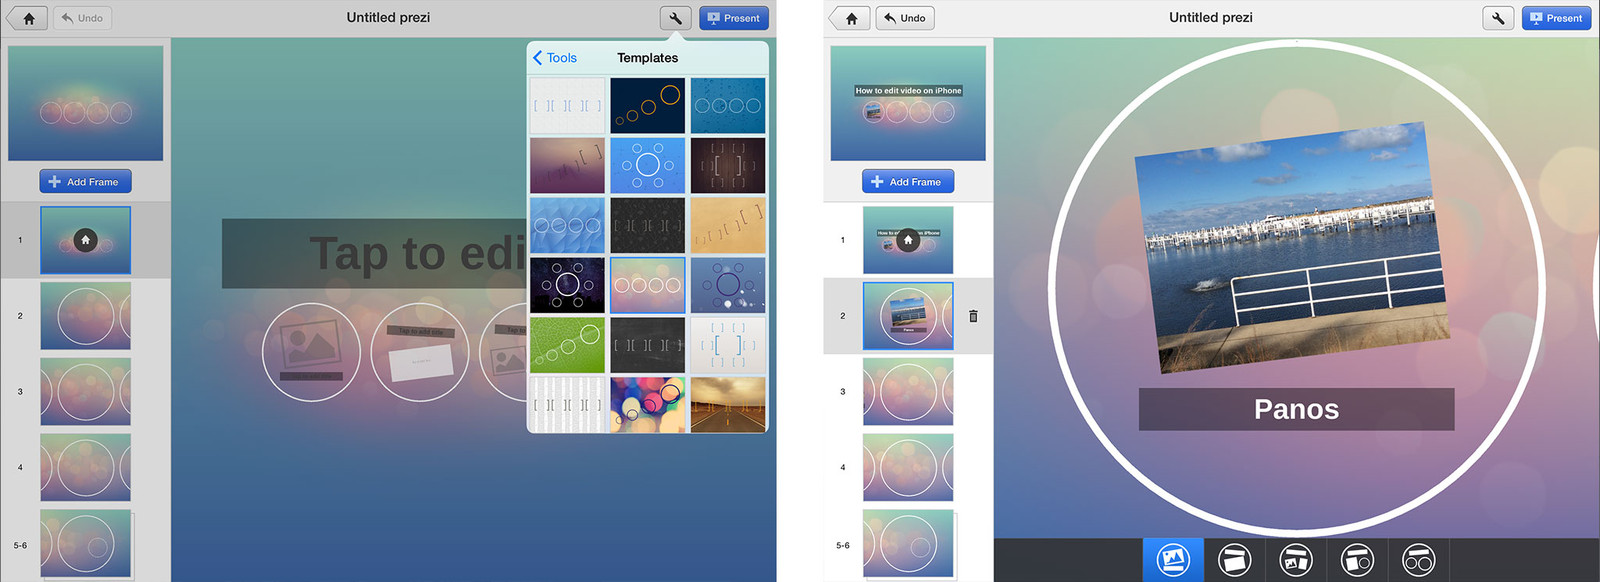 Best presentation apps for iPad: Prezi